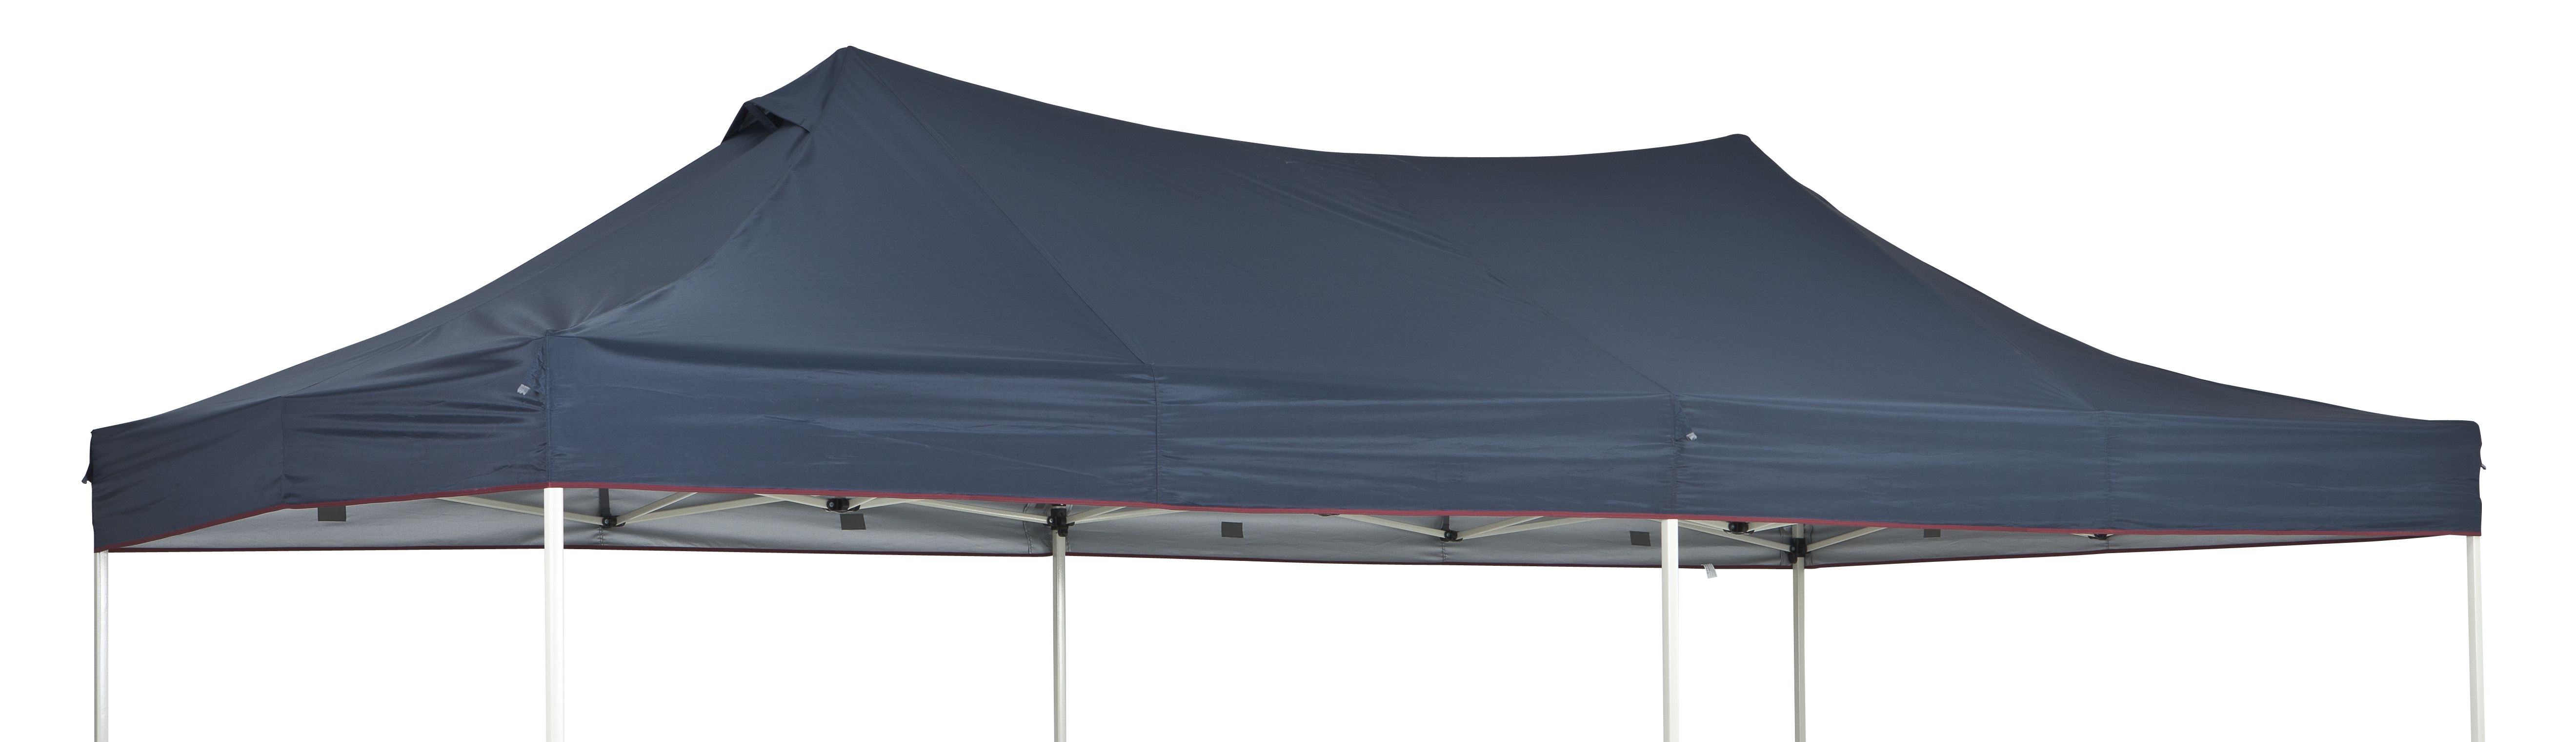 Pop Up Gazebo Bunnings Gazebo Acc Rep Canopy Oz Trail 3x6m Nvy W Brg Trm Mpgcbgd36 A